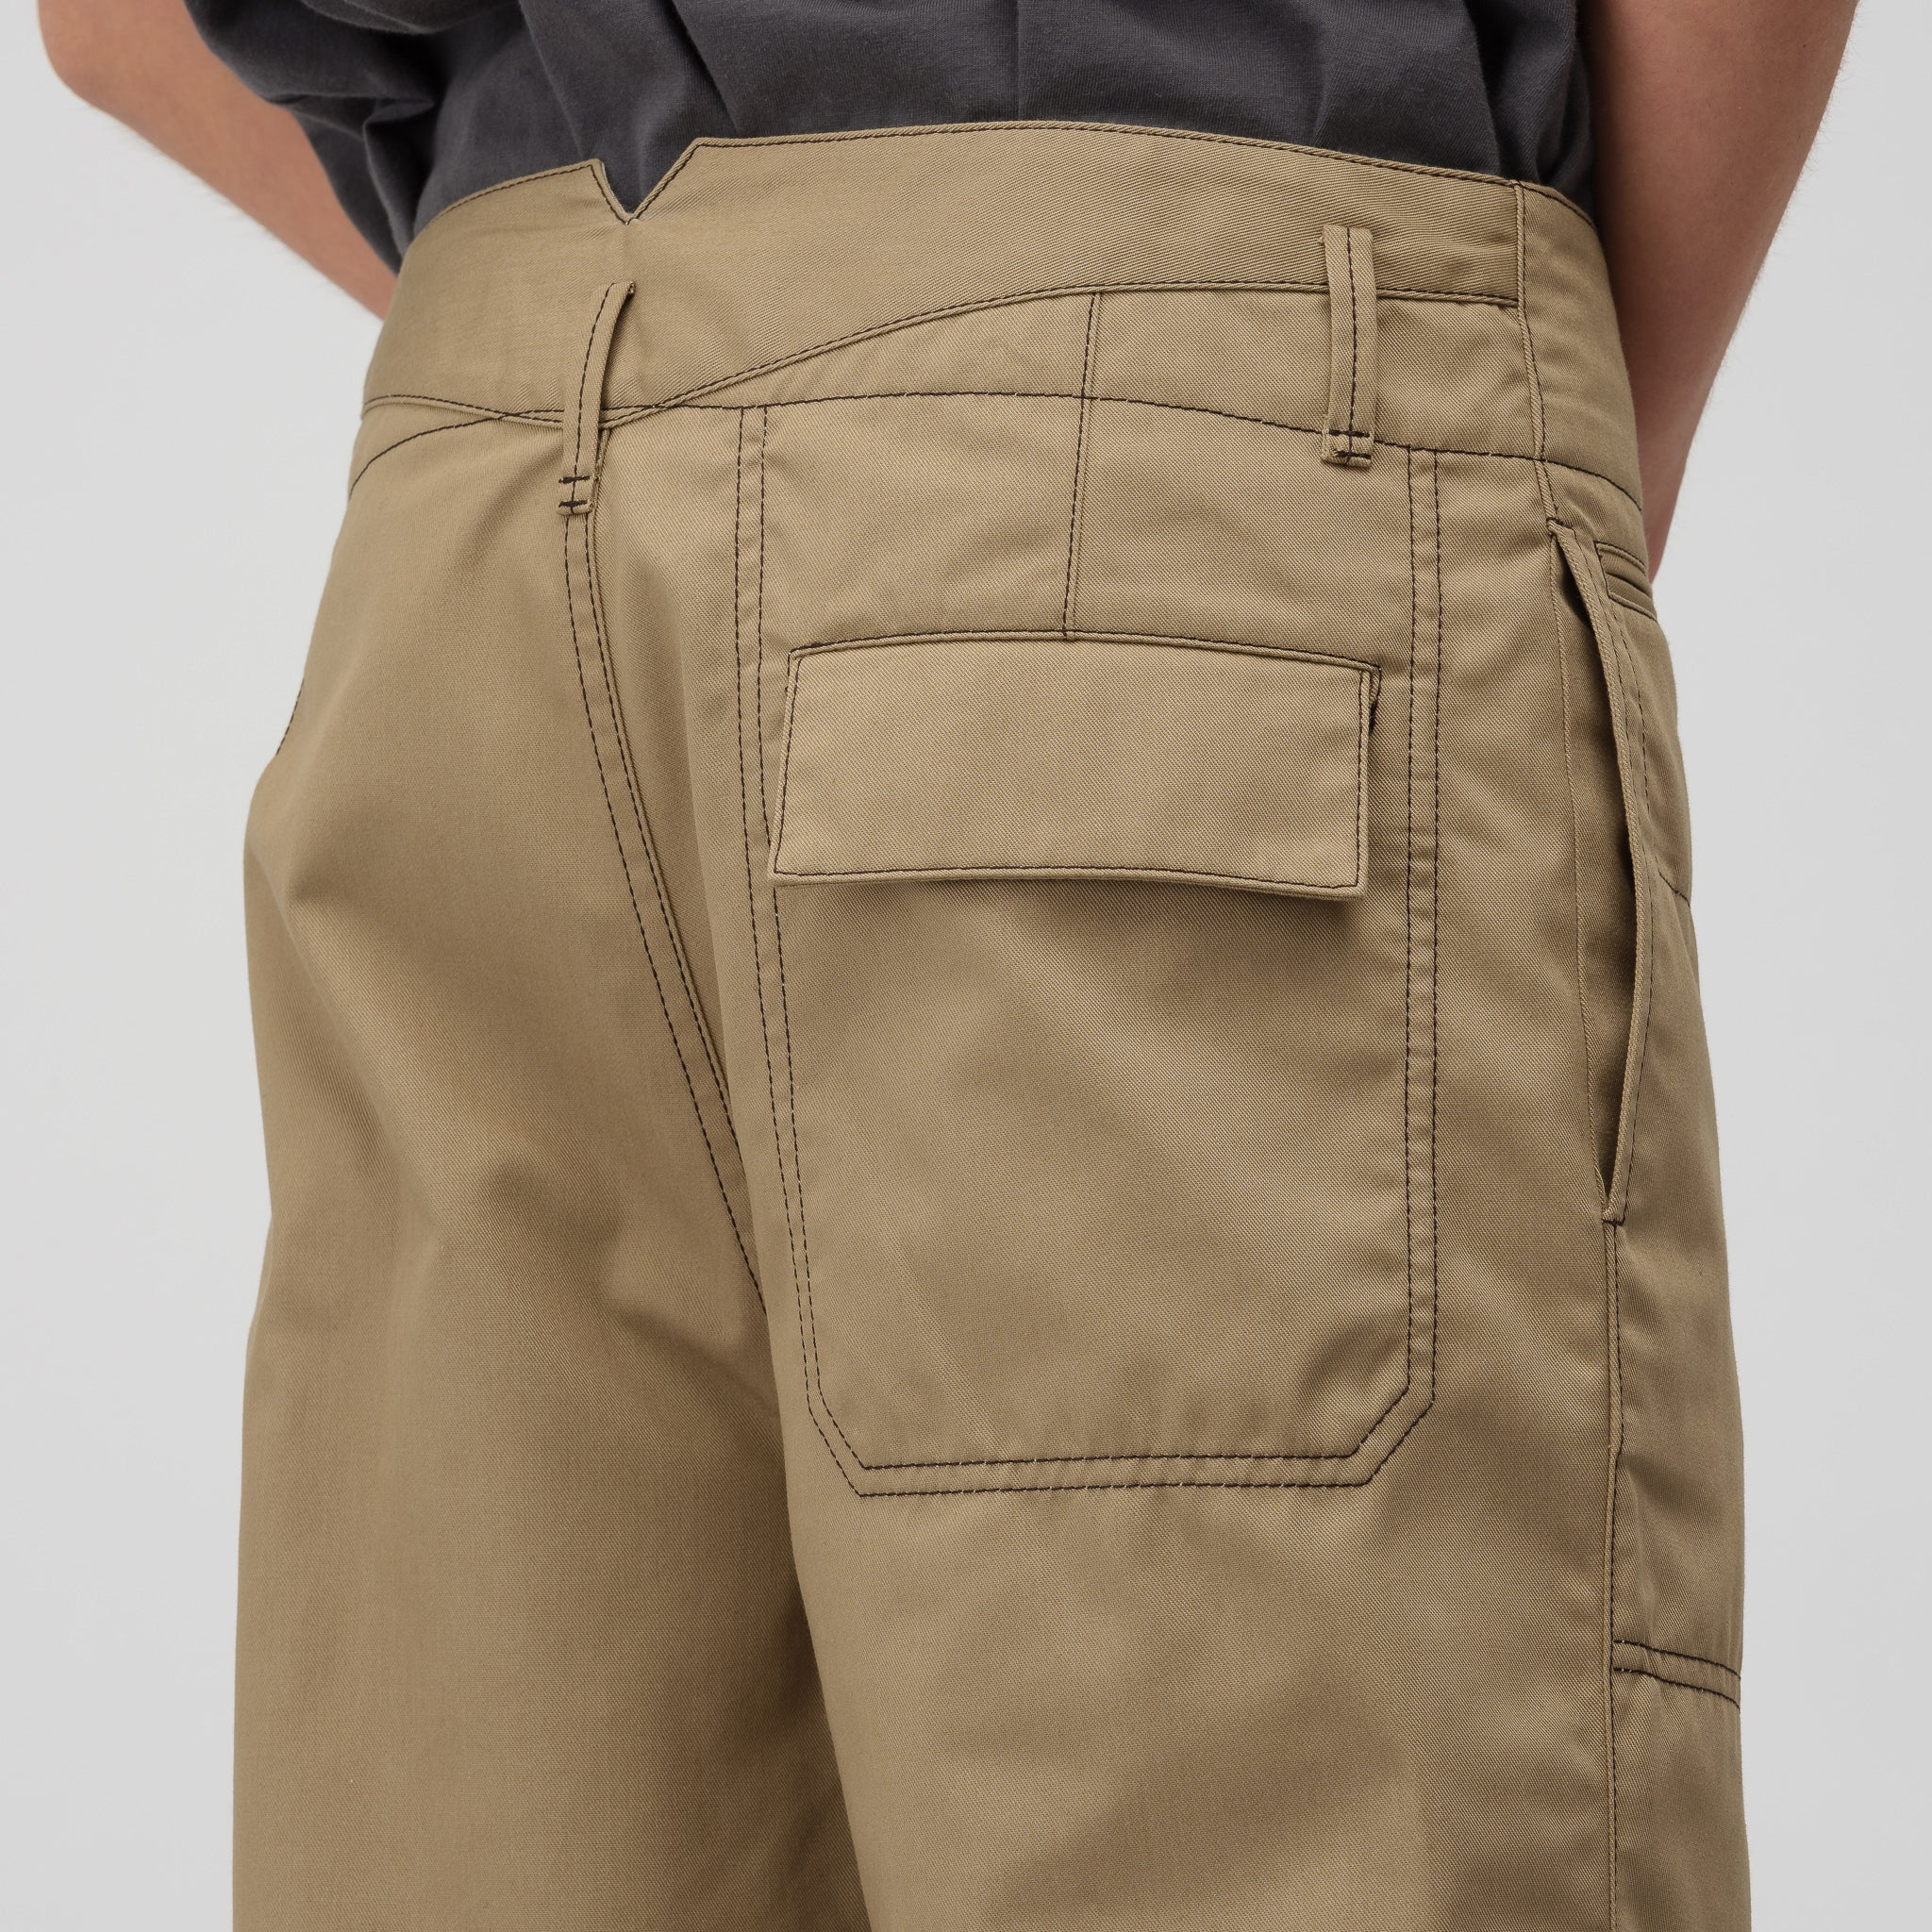 Trousers in Khaki